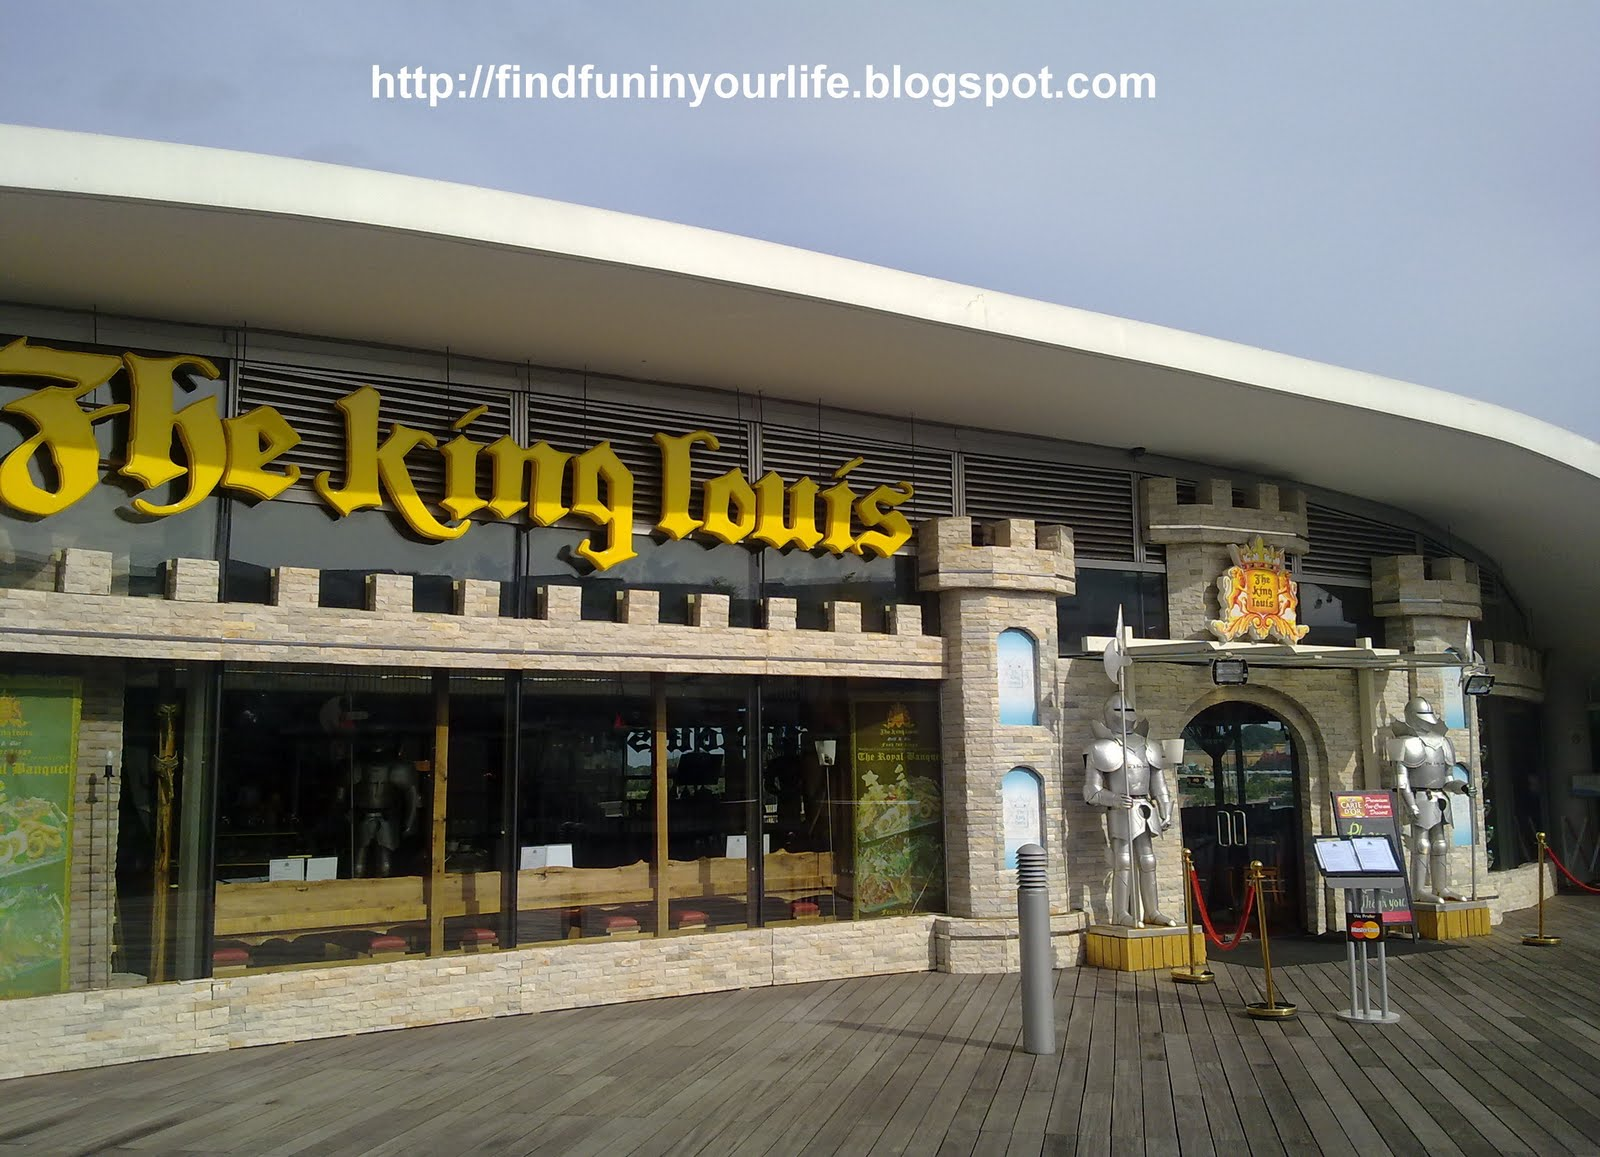 FindFuninyourLife (FFIYL): The King Louis Grill & Bar